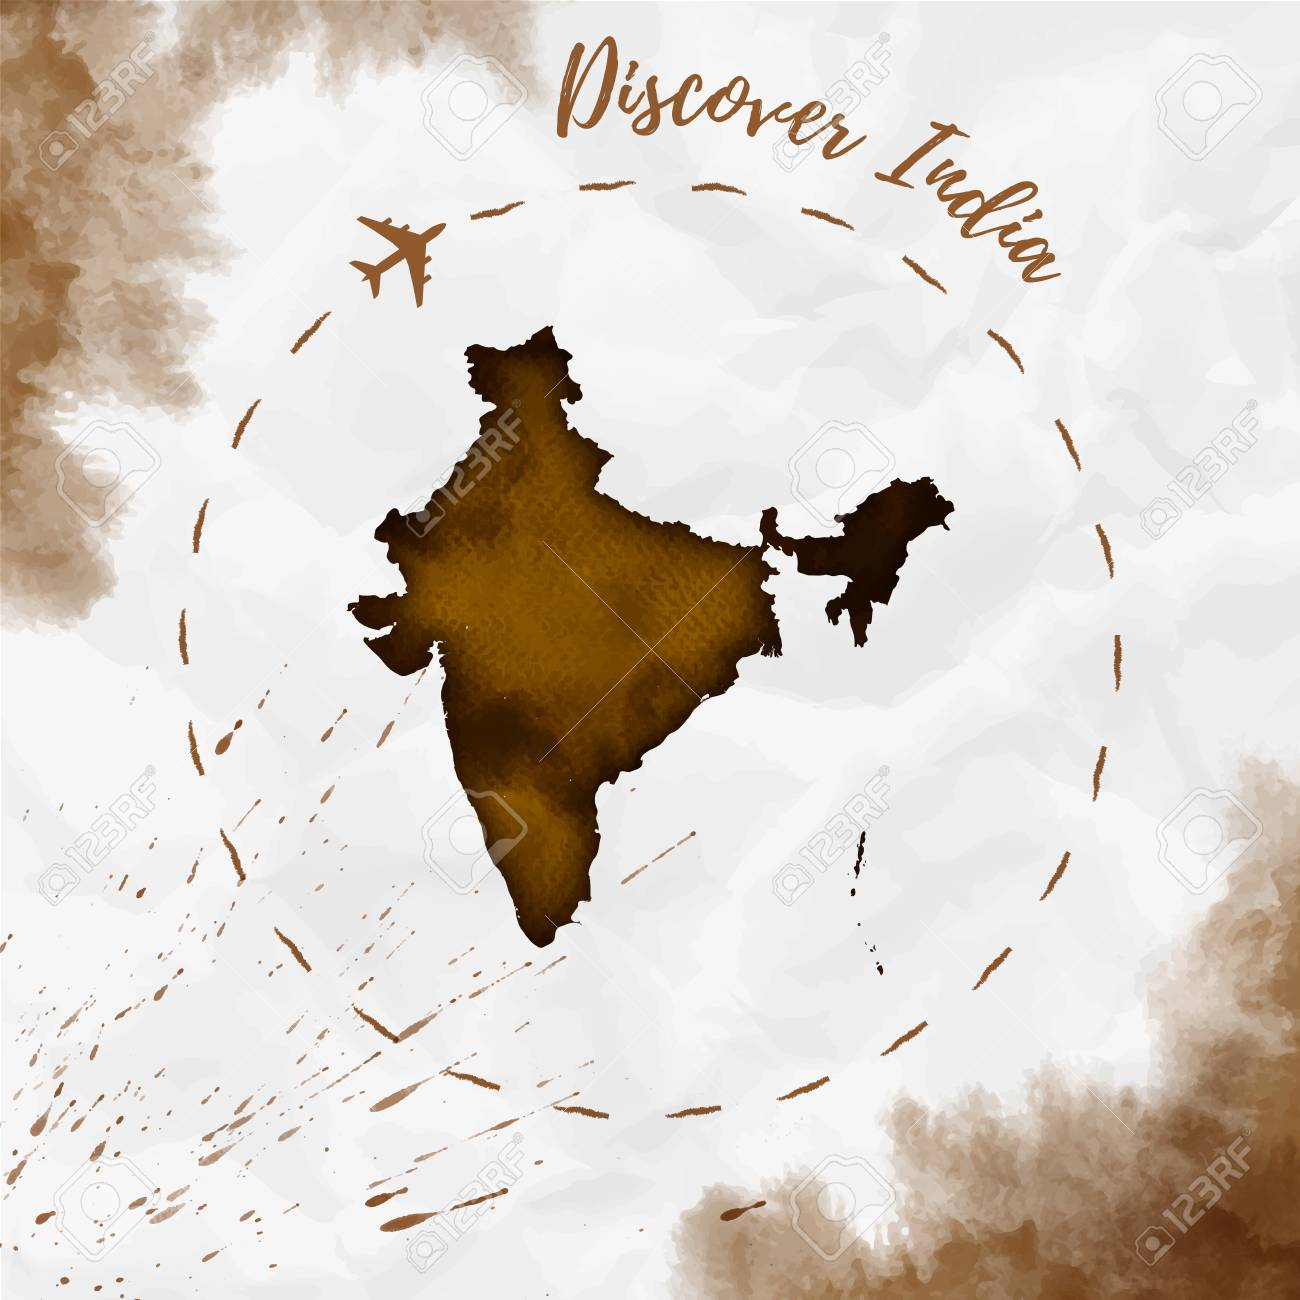 India watercolor map in sepia colors discover india poster with india watercolor map in sepia colors discover india poster with airplane trace and handpainted watercolor gumiabroncs Image collections